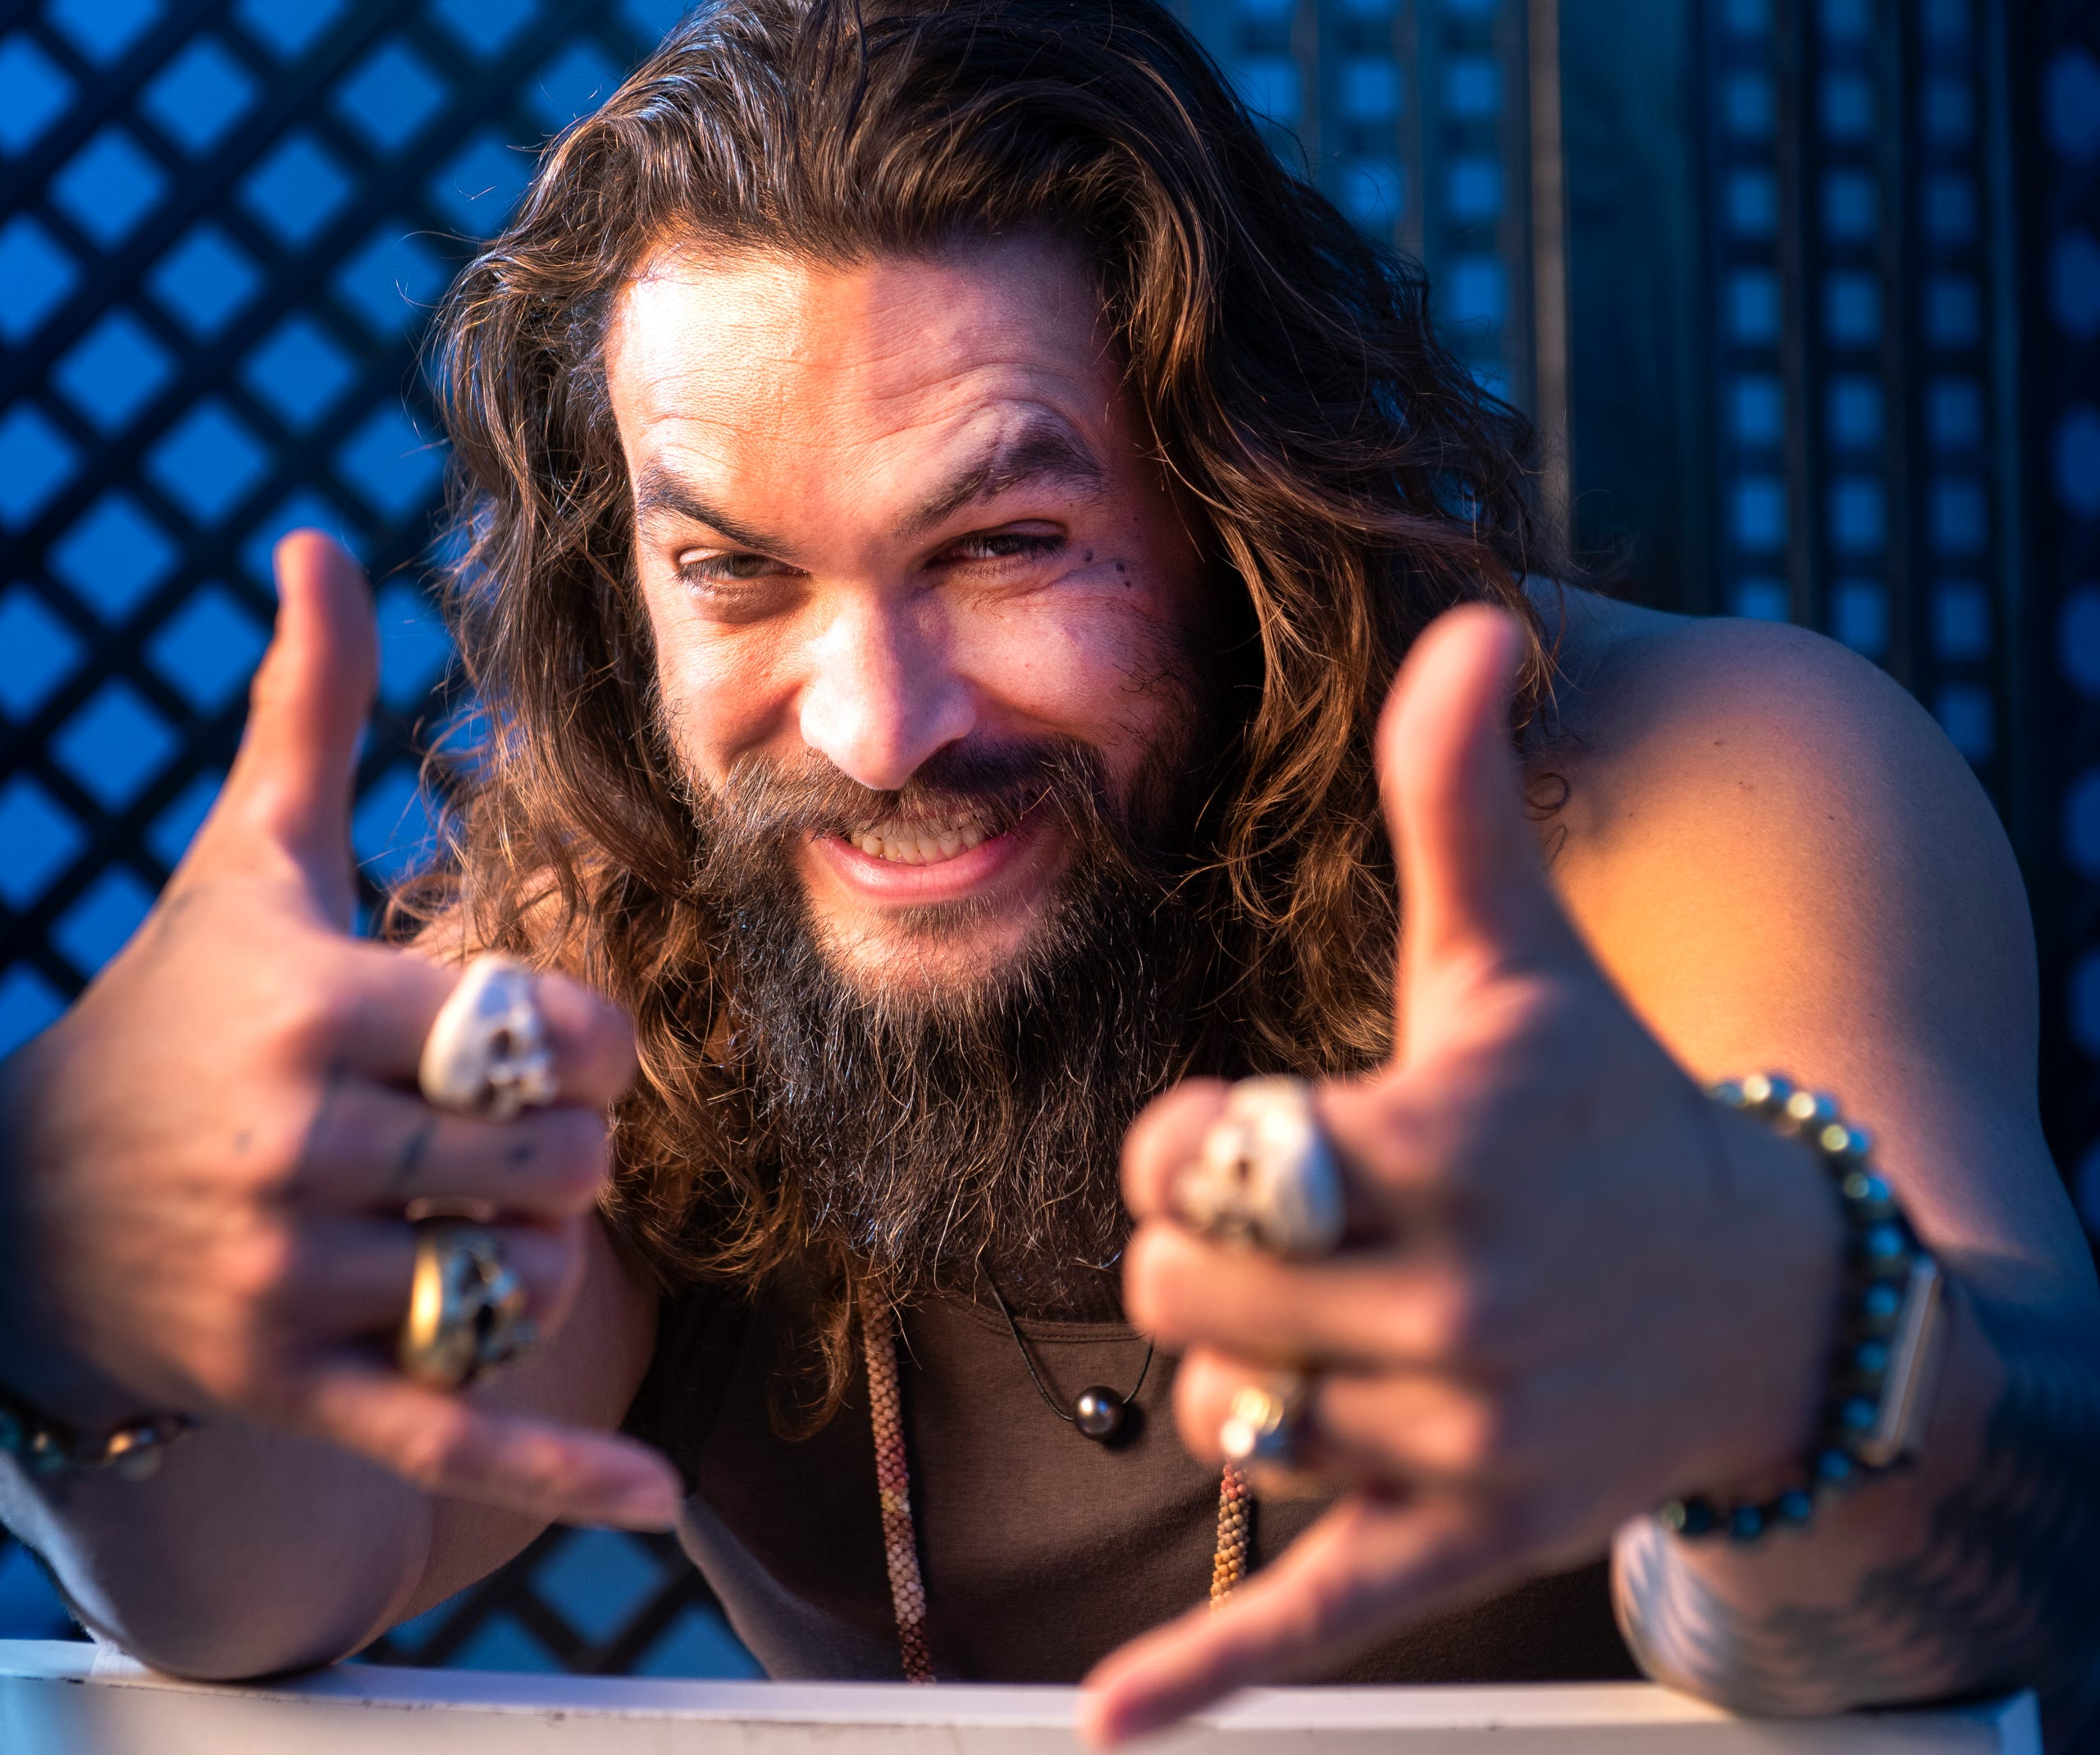 Aquaman Jason Momoa Gets His Party Started With Solo Splash